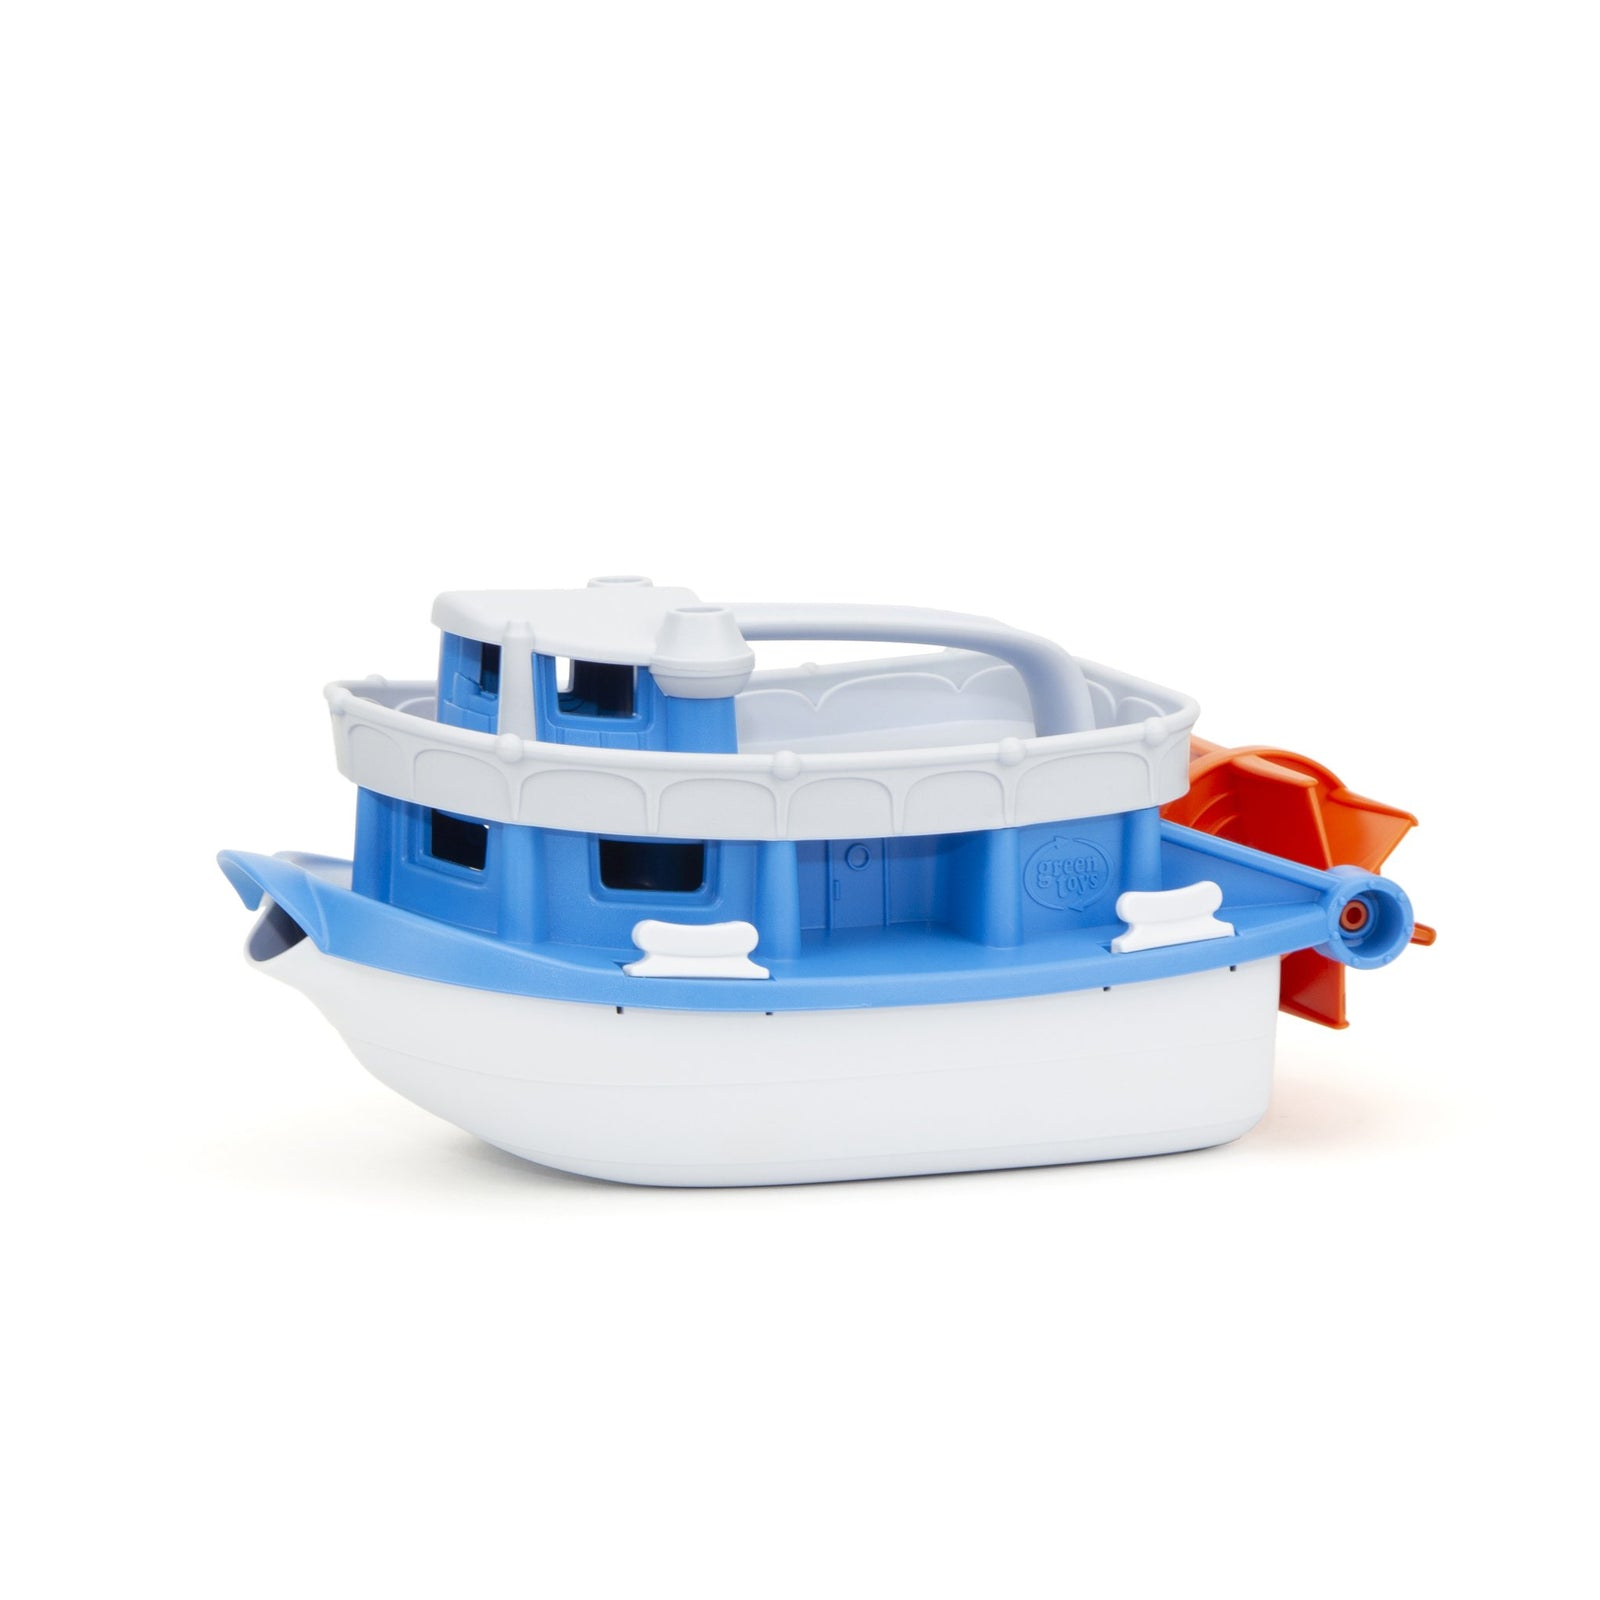 This paddle boat made from recyled plastic milk bottles is a durable toy that's perfect for bathtime fun - a front spout makes it good for hair washing too!